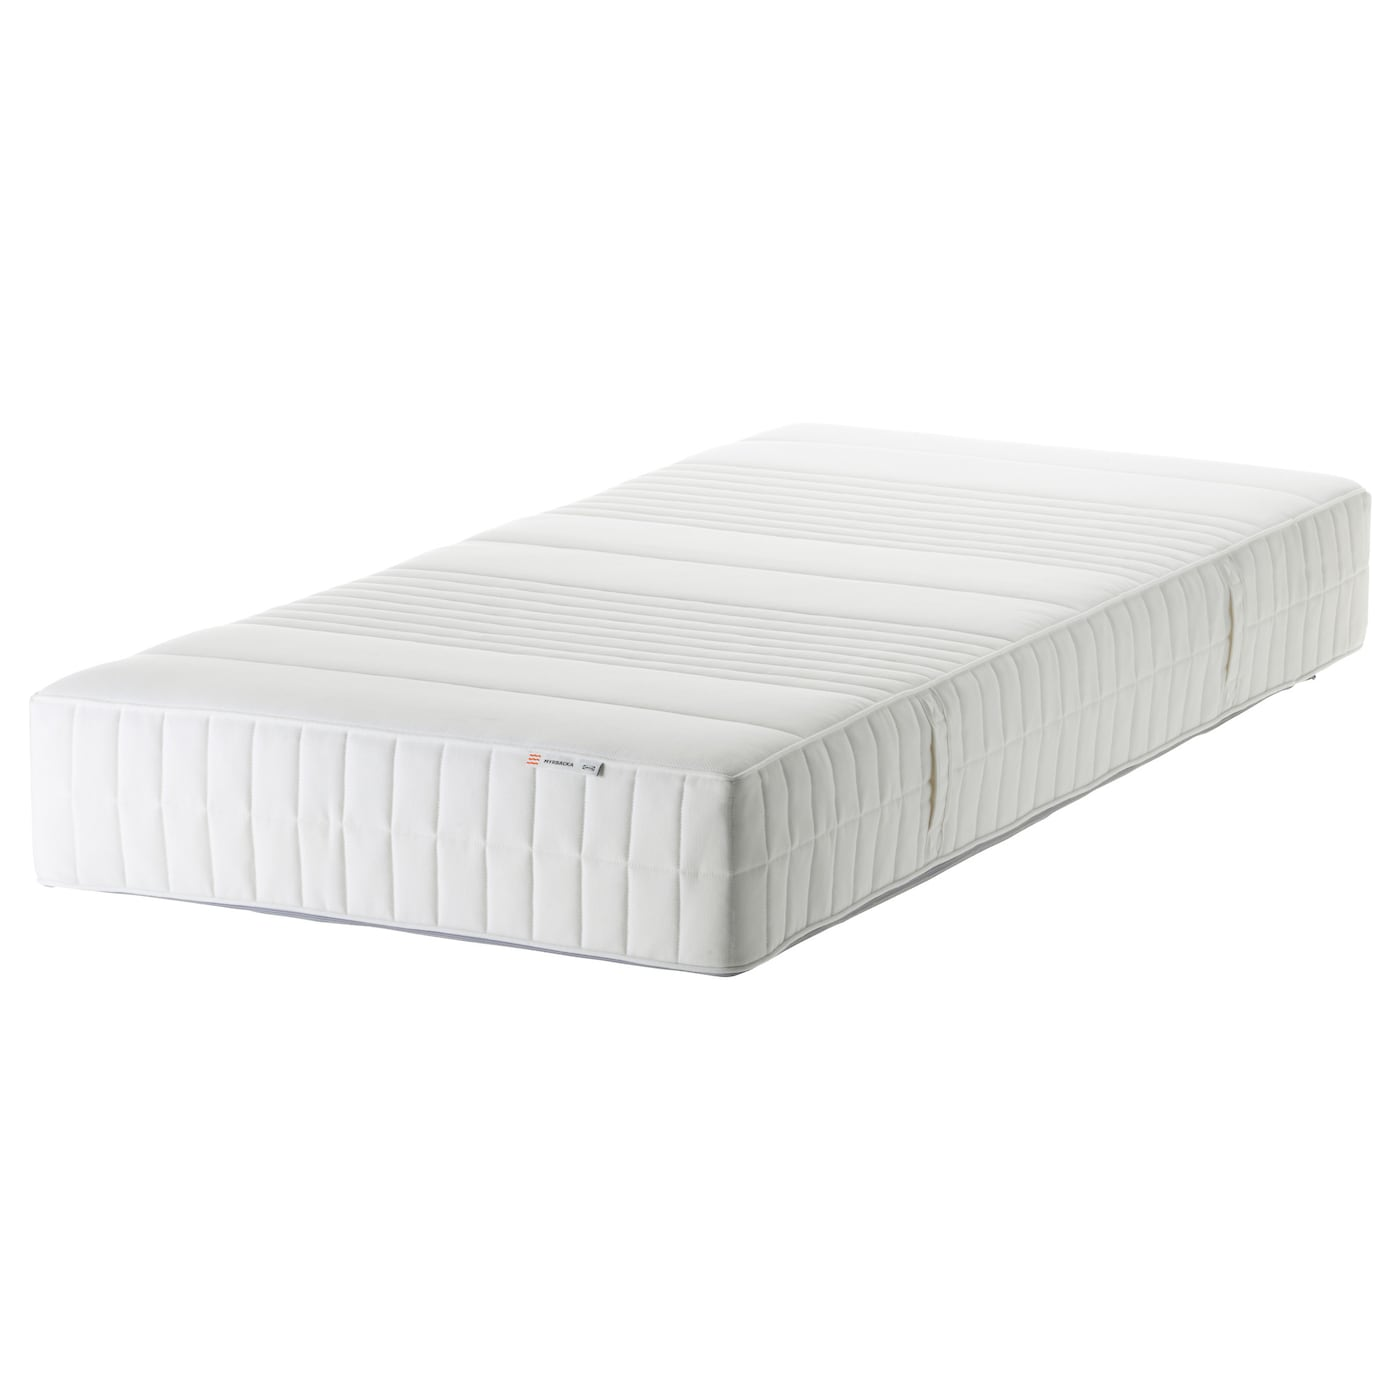 myrbacka matelas latex mi ferme blanc 80x200 cm ikea. Black Bedroom Furniture Sets. Home Design Ideas